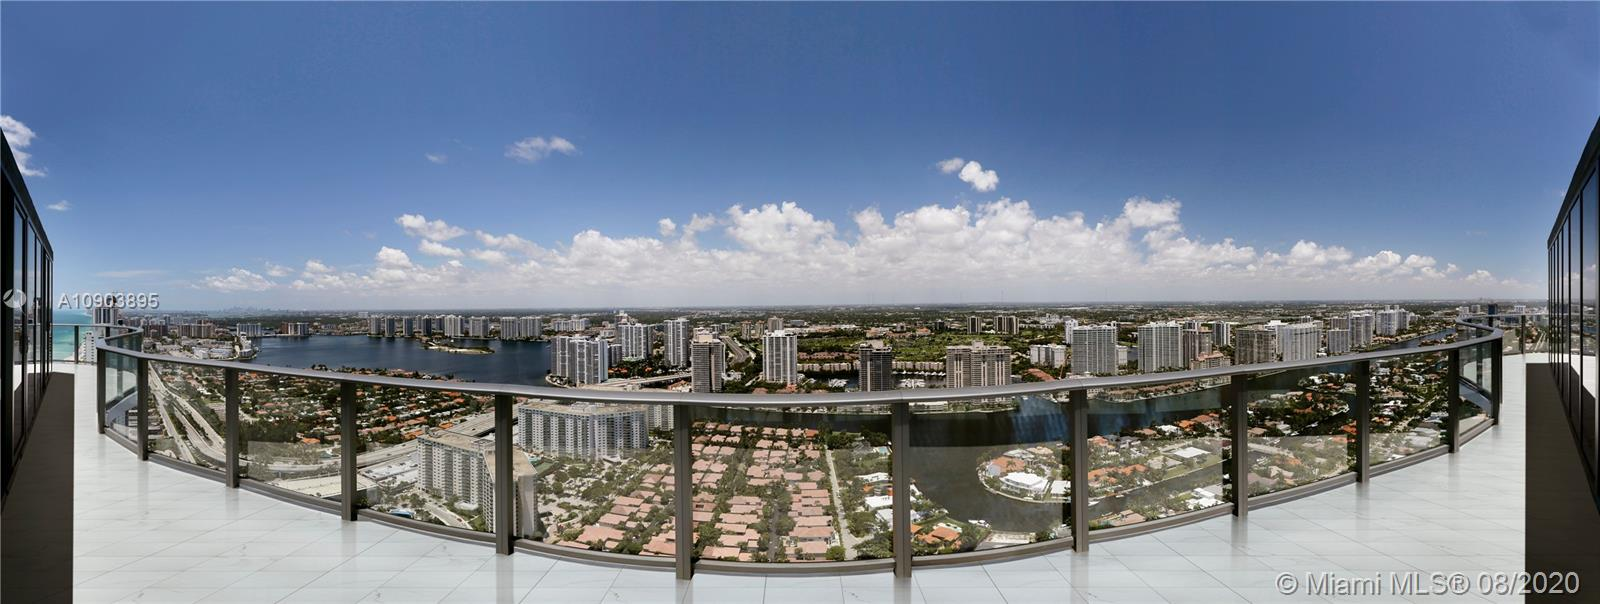 19575 Collins Ave #43 photo054